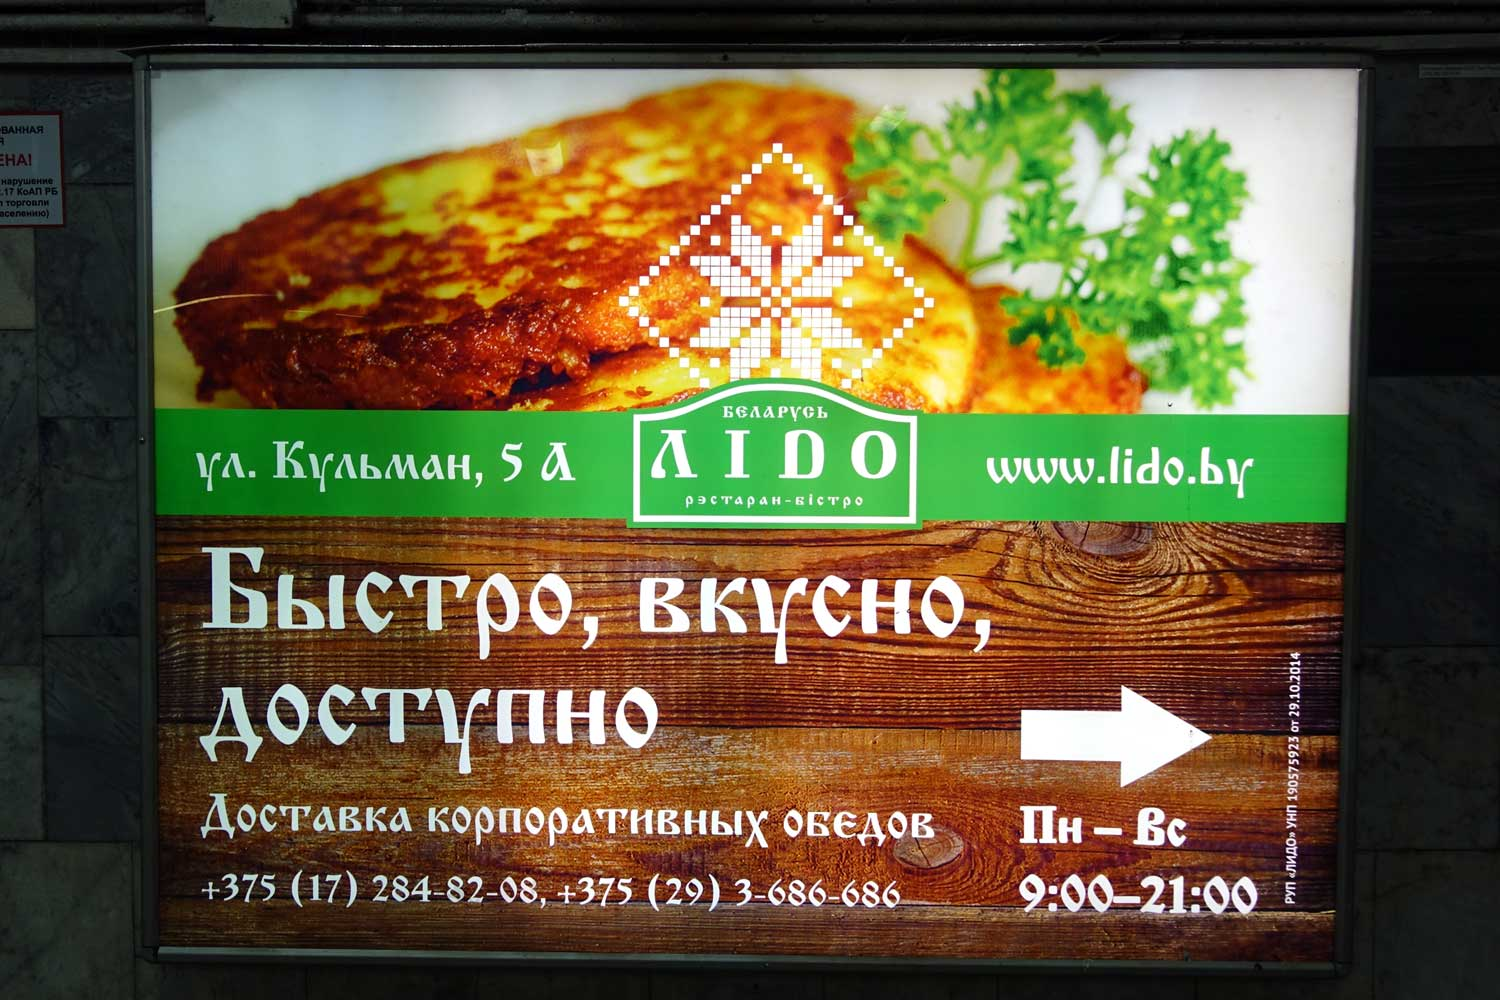 Belarus Food in Minsk Restaurants - lido restaurant advertisement